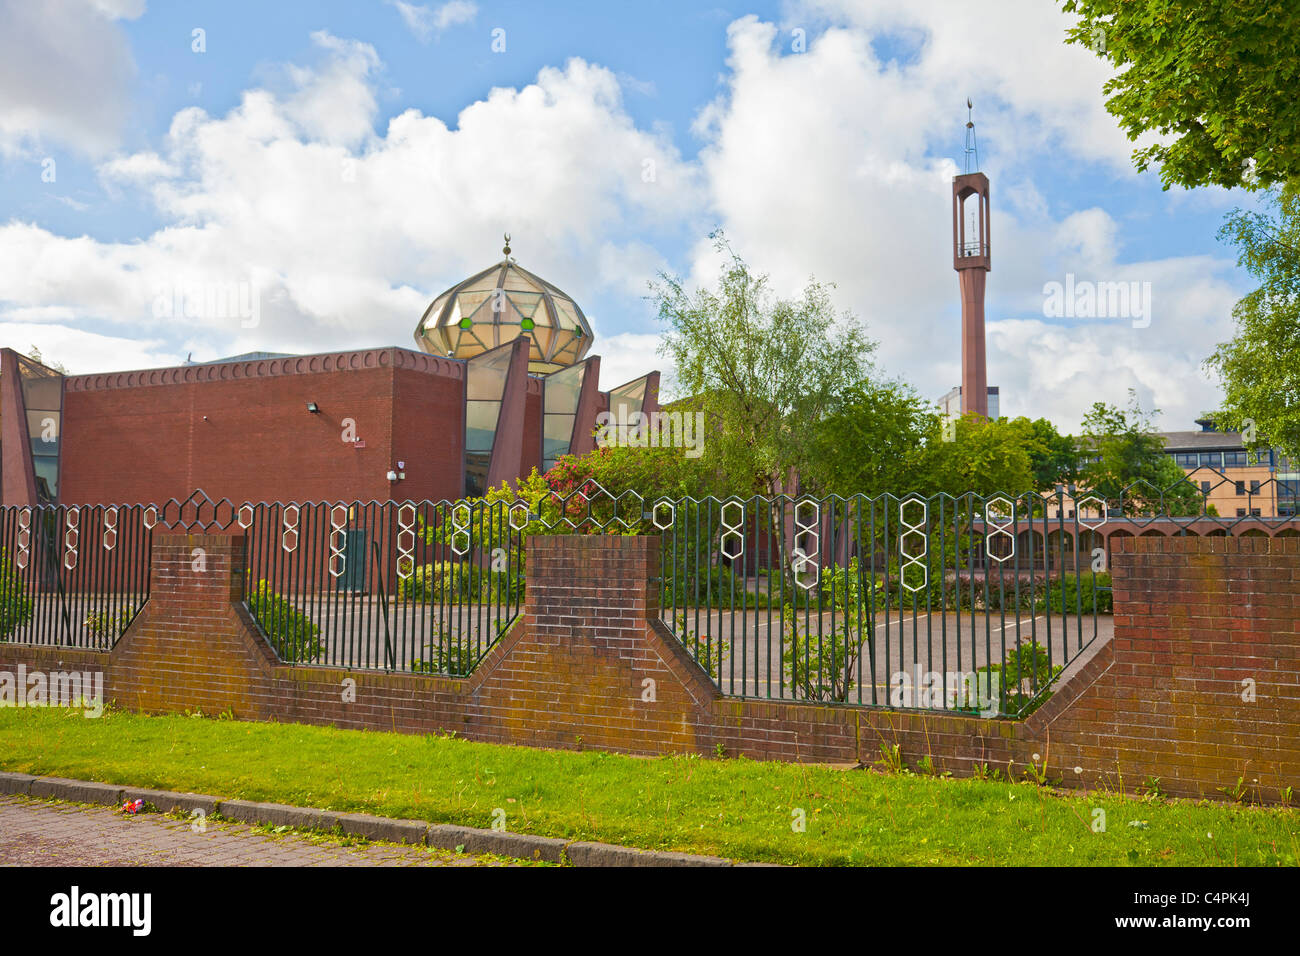 Glasgow Central Mosque and Islamic Centre, exterior. Gorbals, Glasgow. - Stock Image